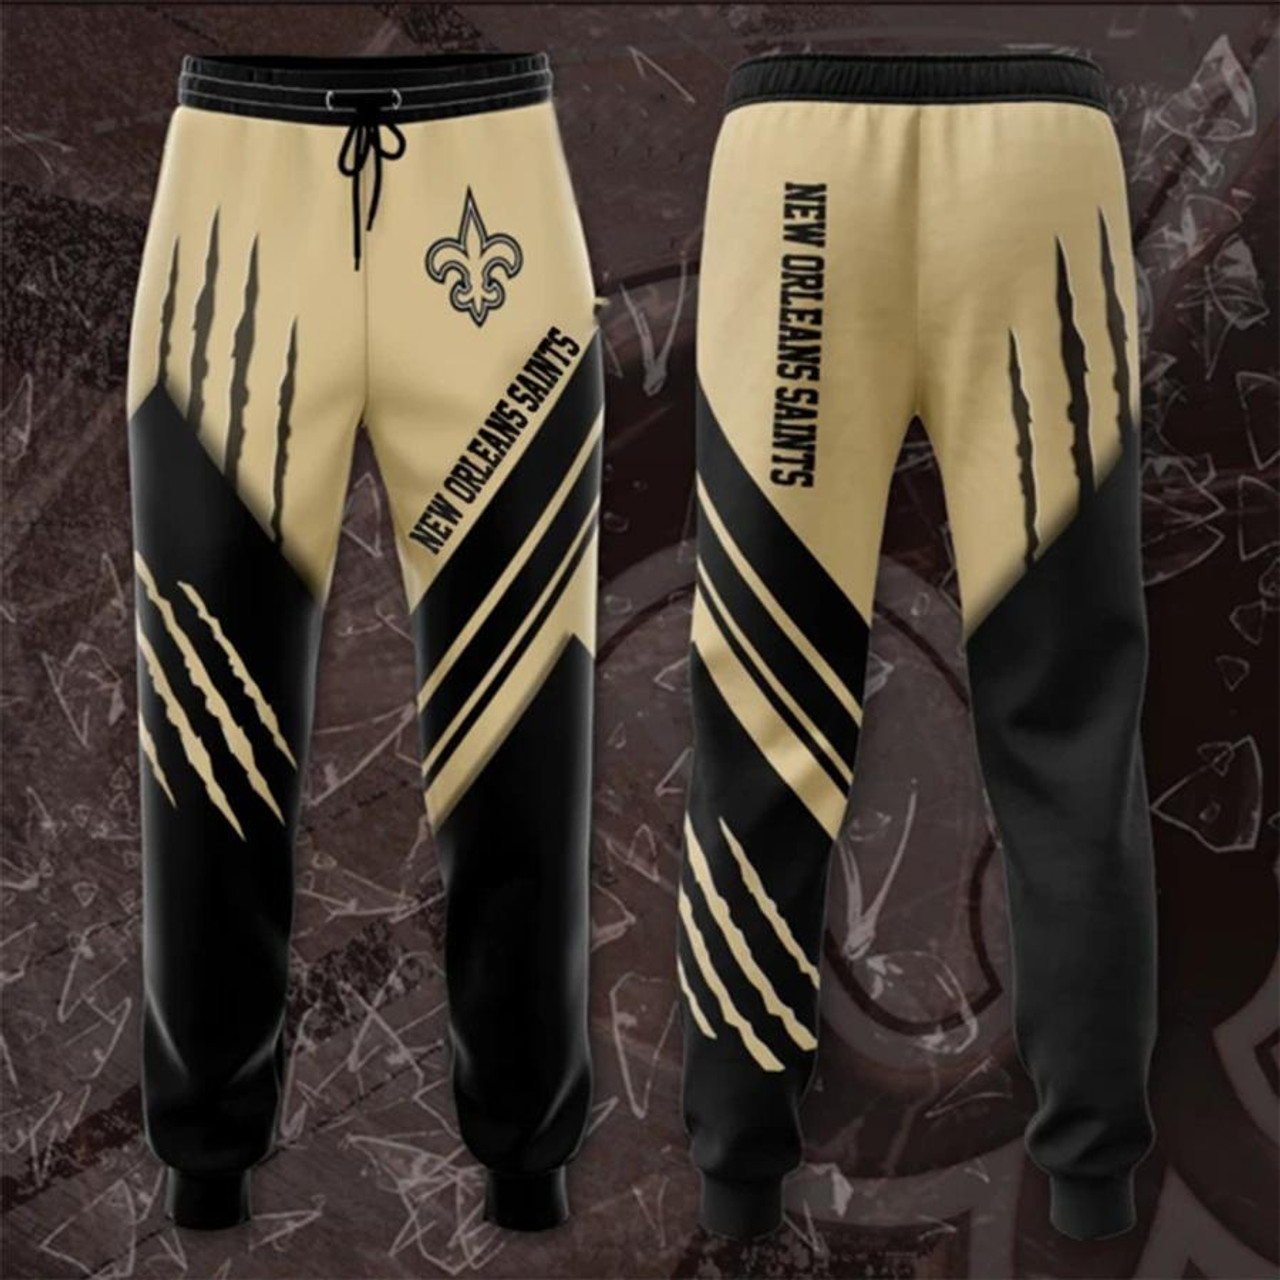 **(OFFICIAL-N.F.L.NEW-ORLEANS-SAINTS-TRENDY-TEAM-SPORT-SWEAT-PANTS & OFFICIAL-SAINTS-TEAM-LOGOS & OFFICIAL-CLASSIC-SAINTS-TEAM-COLORS/CUSTOM-DETAILED-3D-GRAPHIC-DOUBLE-SIDED-PRINTED/WARM-PREMIUM-TRENDY-SAINTS-TEAM/FASHION-GAME-DAY-SWEAT-PANTS)**